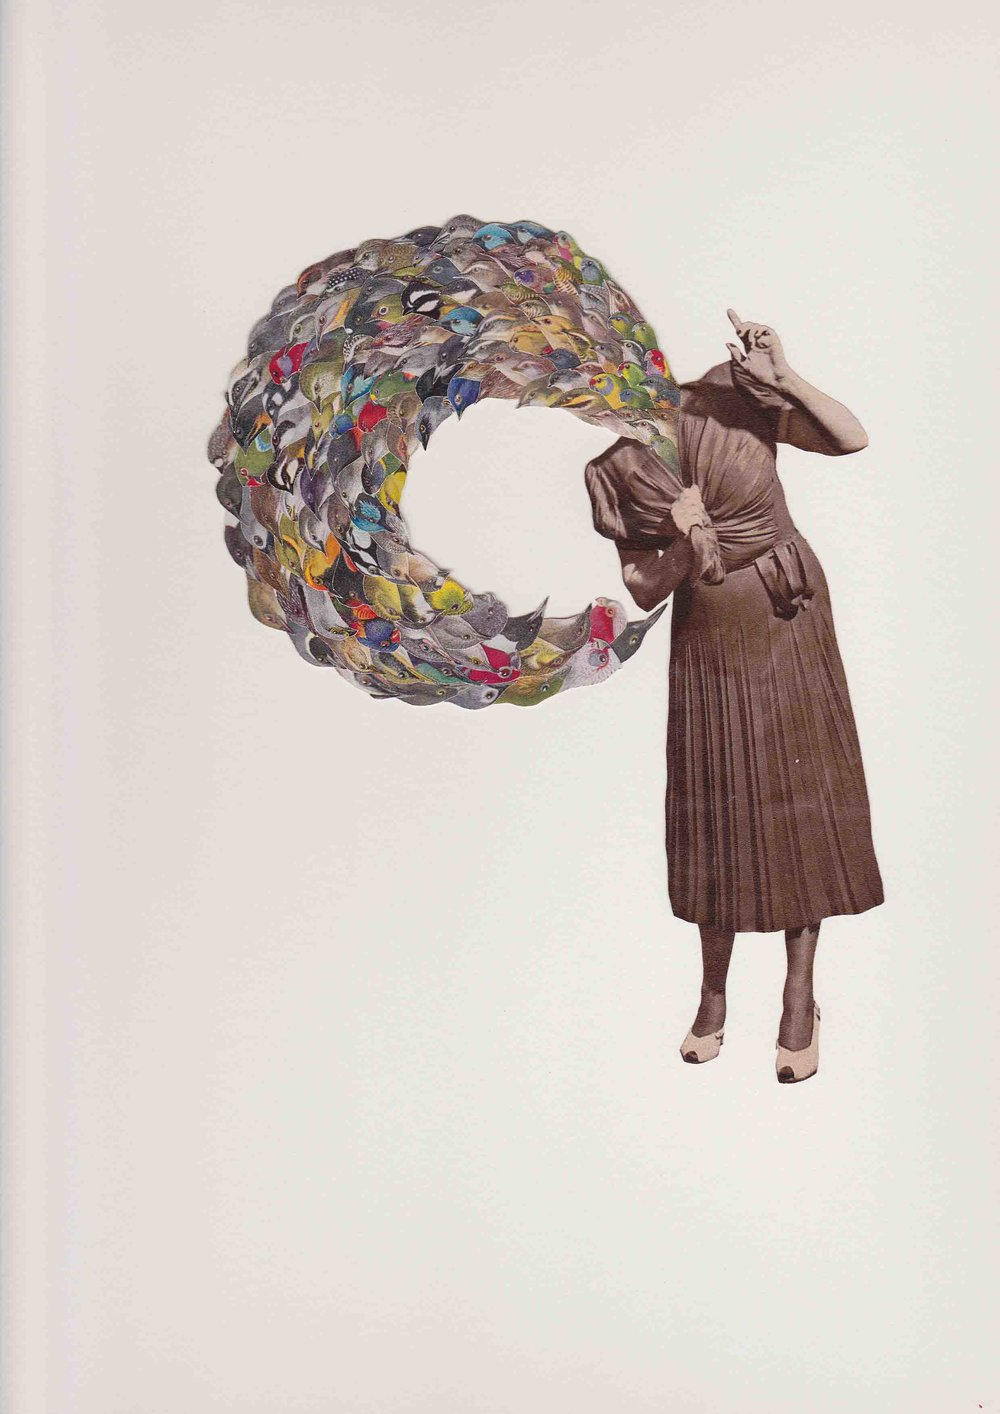 Lucy James,  bird girl flappin' and squawkin' , 2012, collage on paper, 42 x 32cm